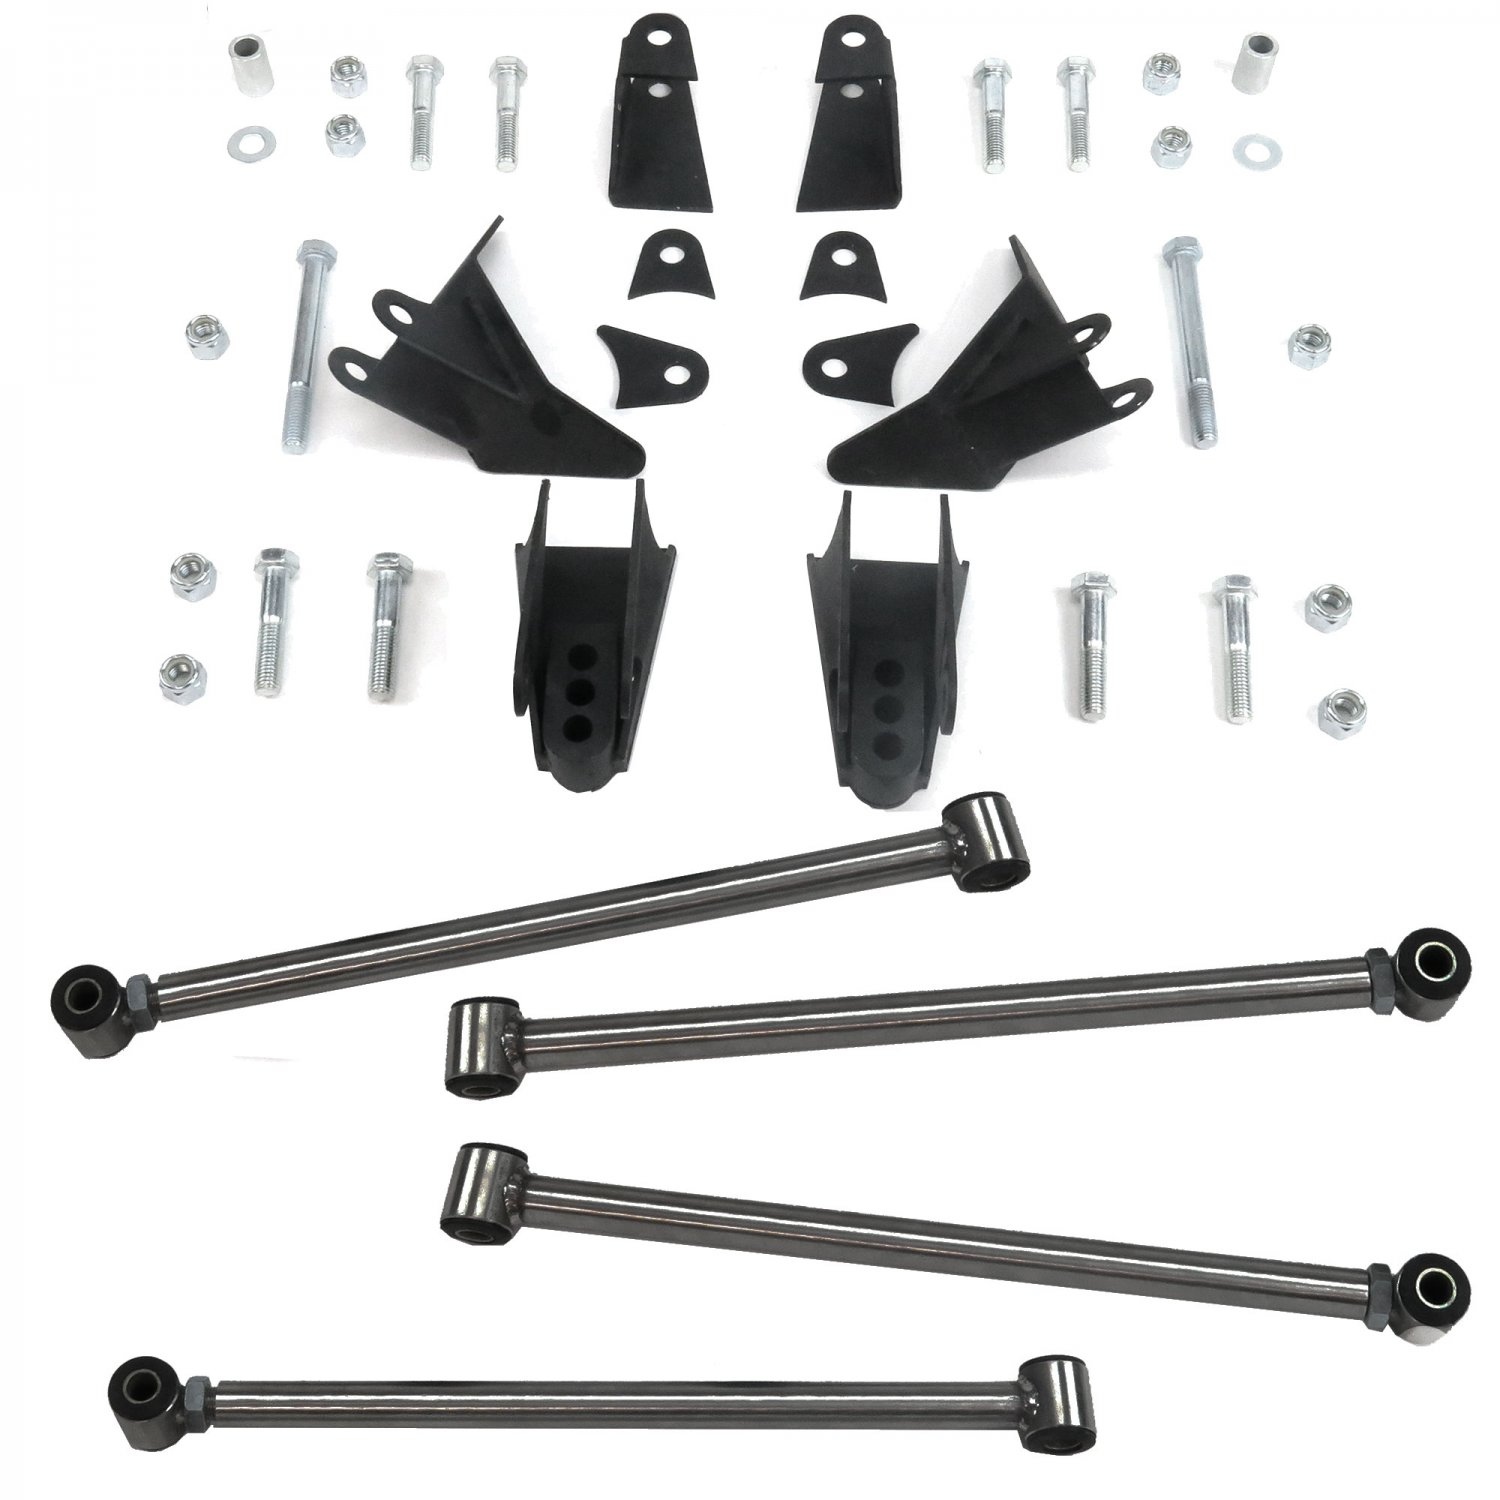 Triangulated Rear Suspension Four 4 Link Kit For 67 79 Ford Truck 1955 F100 Fits Coilovers